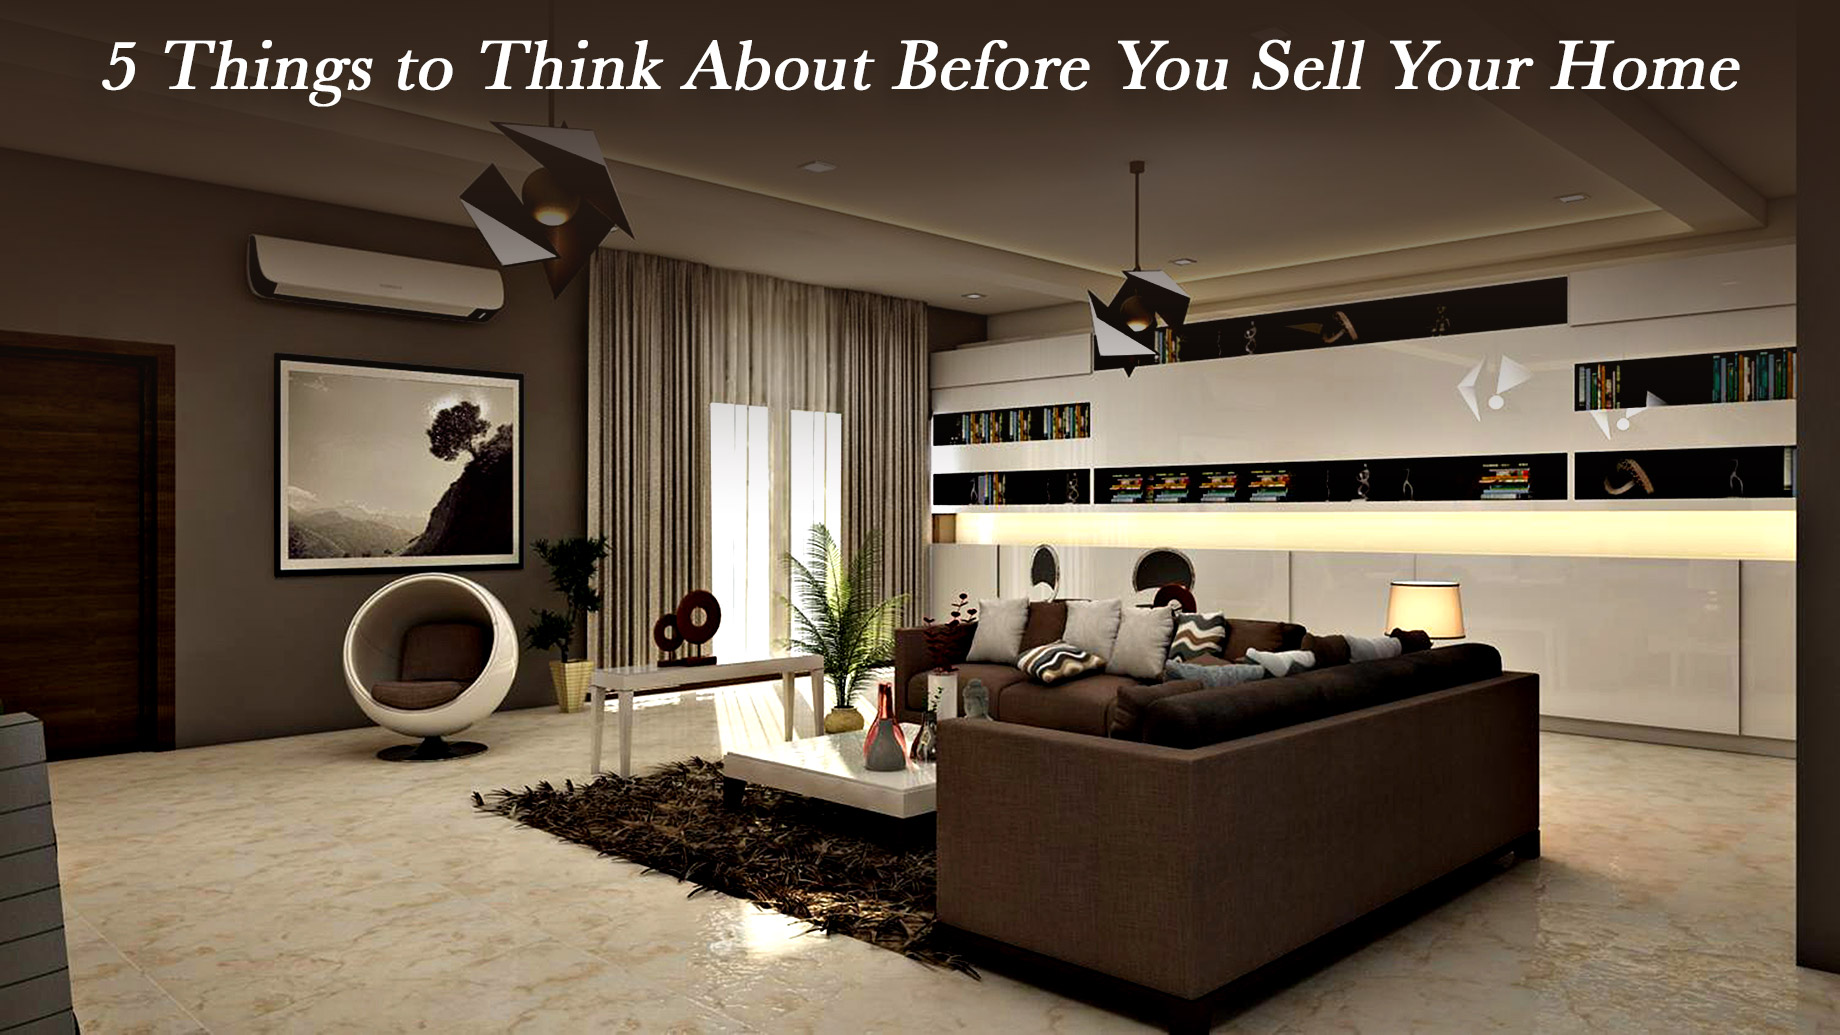 5 Things to Think About Before You Sell Your Home